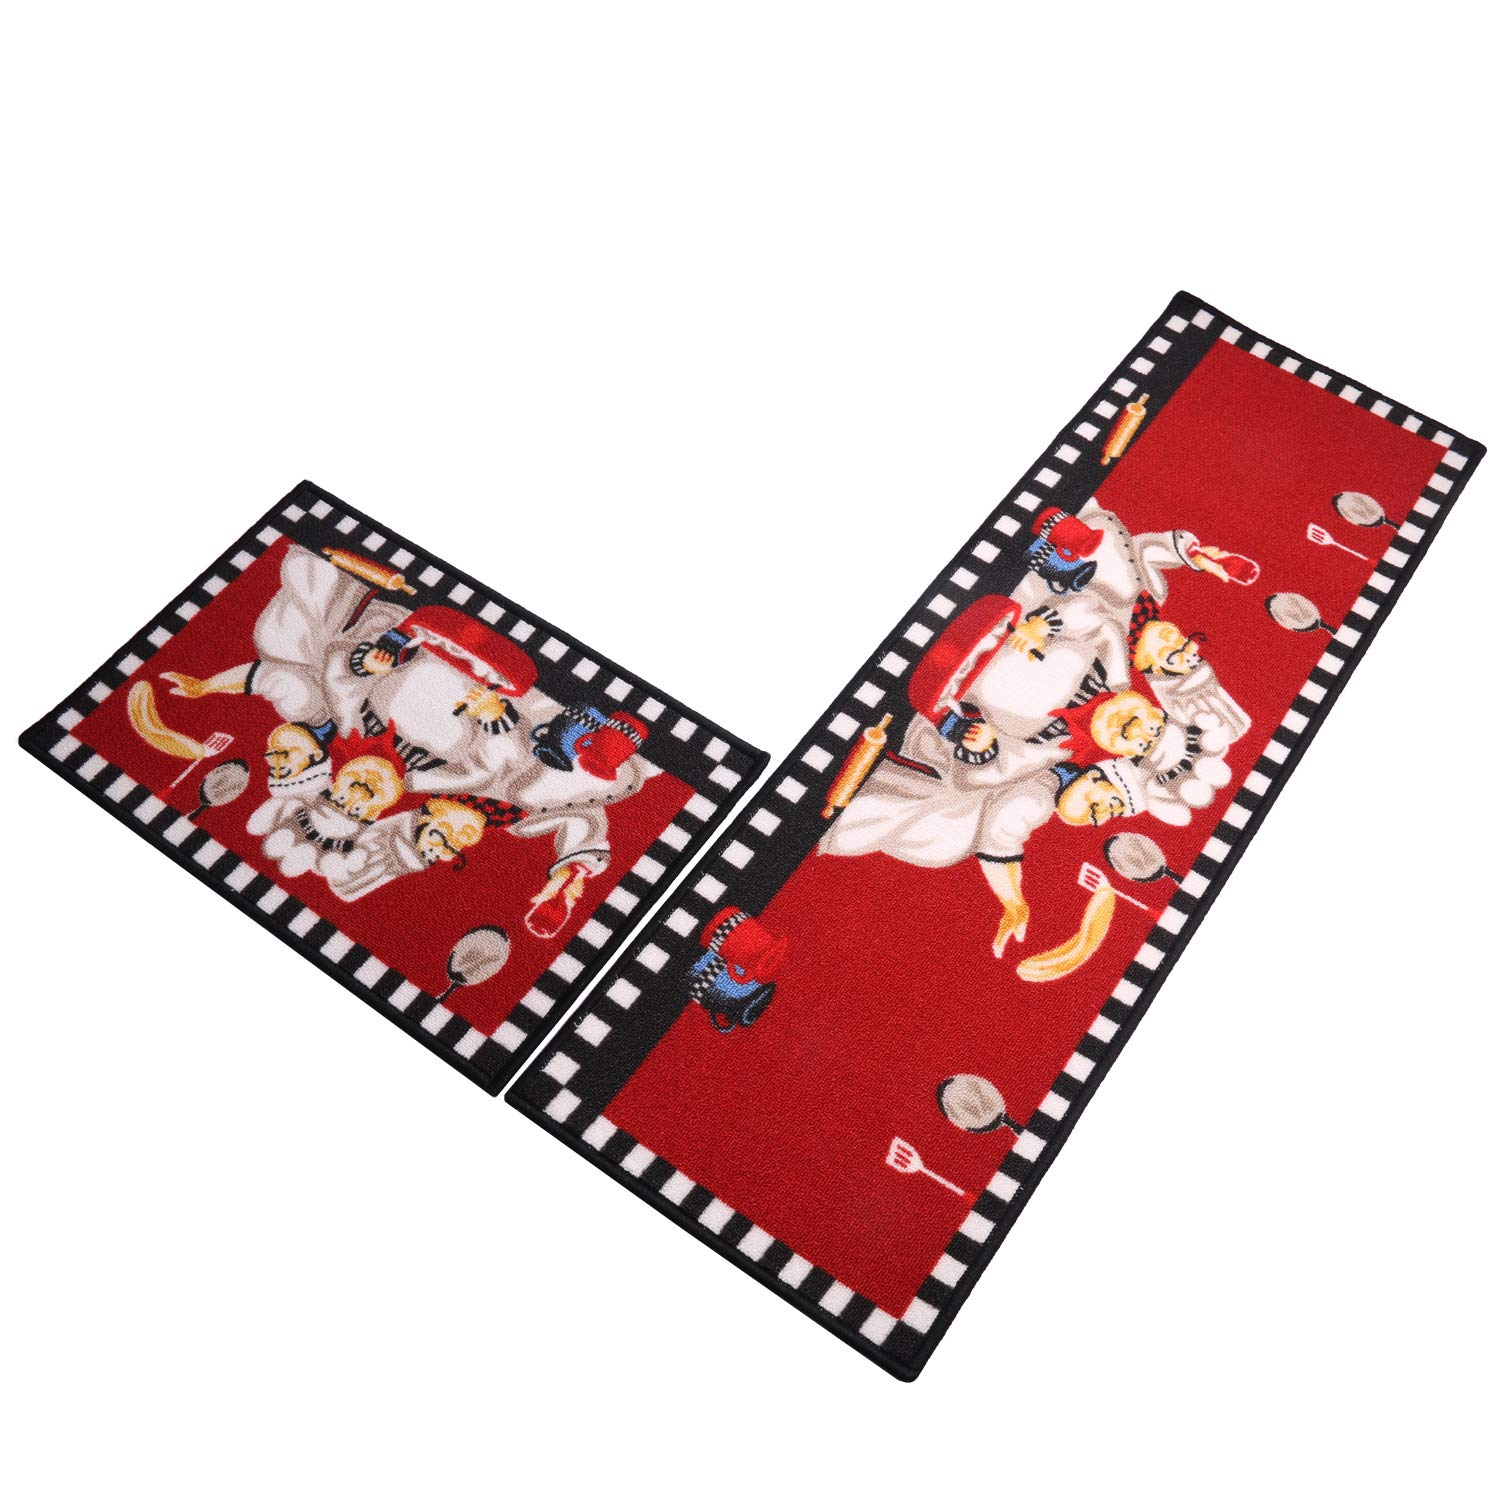 SHACOS Kitchen Rugs Mats Set of 2 Pieces Kitchen Floor Mats with Rubber Backing Non Slip Doormat Rug Runner (16x24 inch+16x47 inch, 3-Chefs)